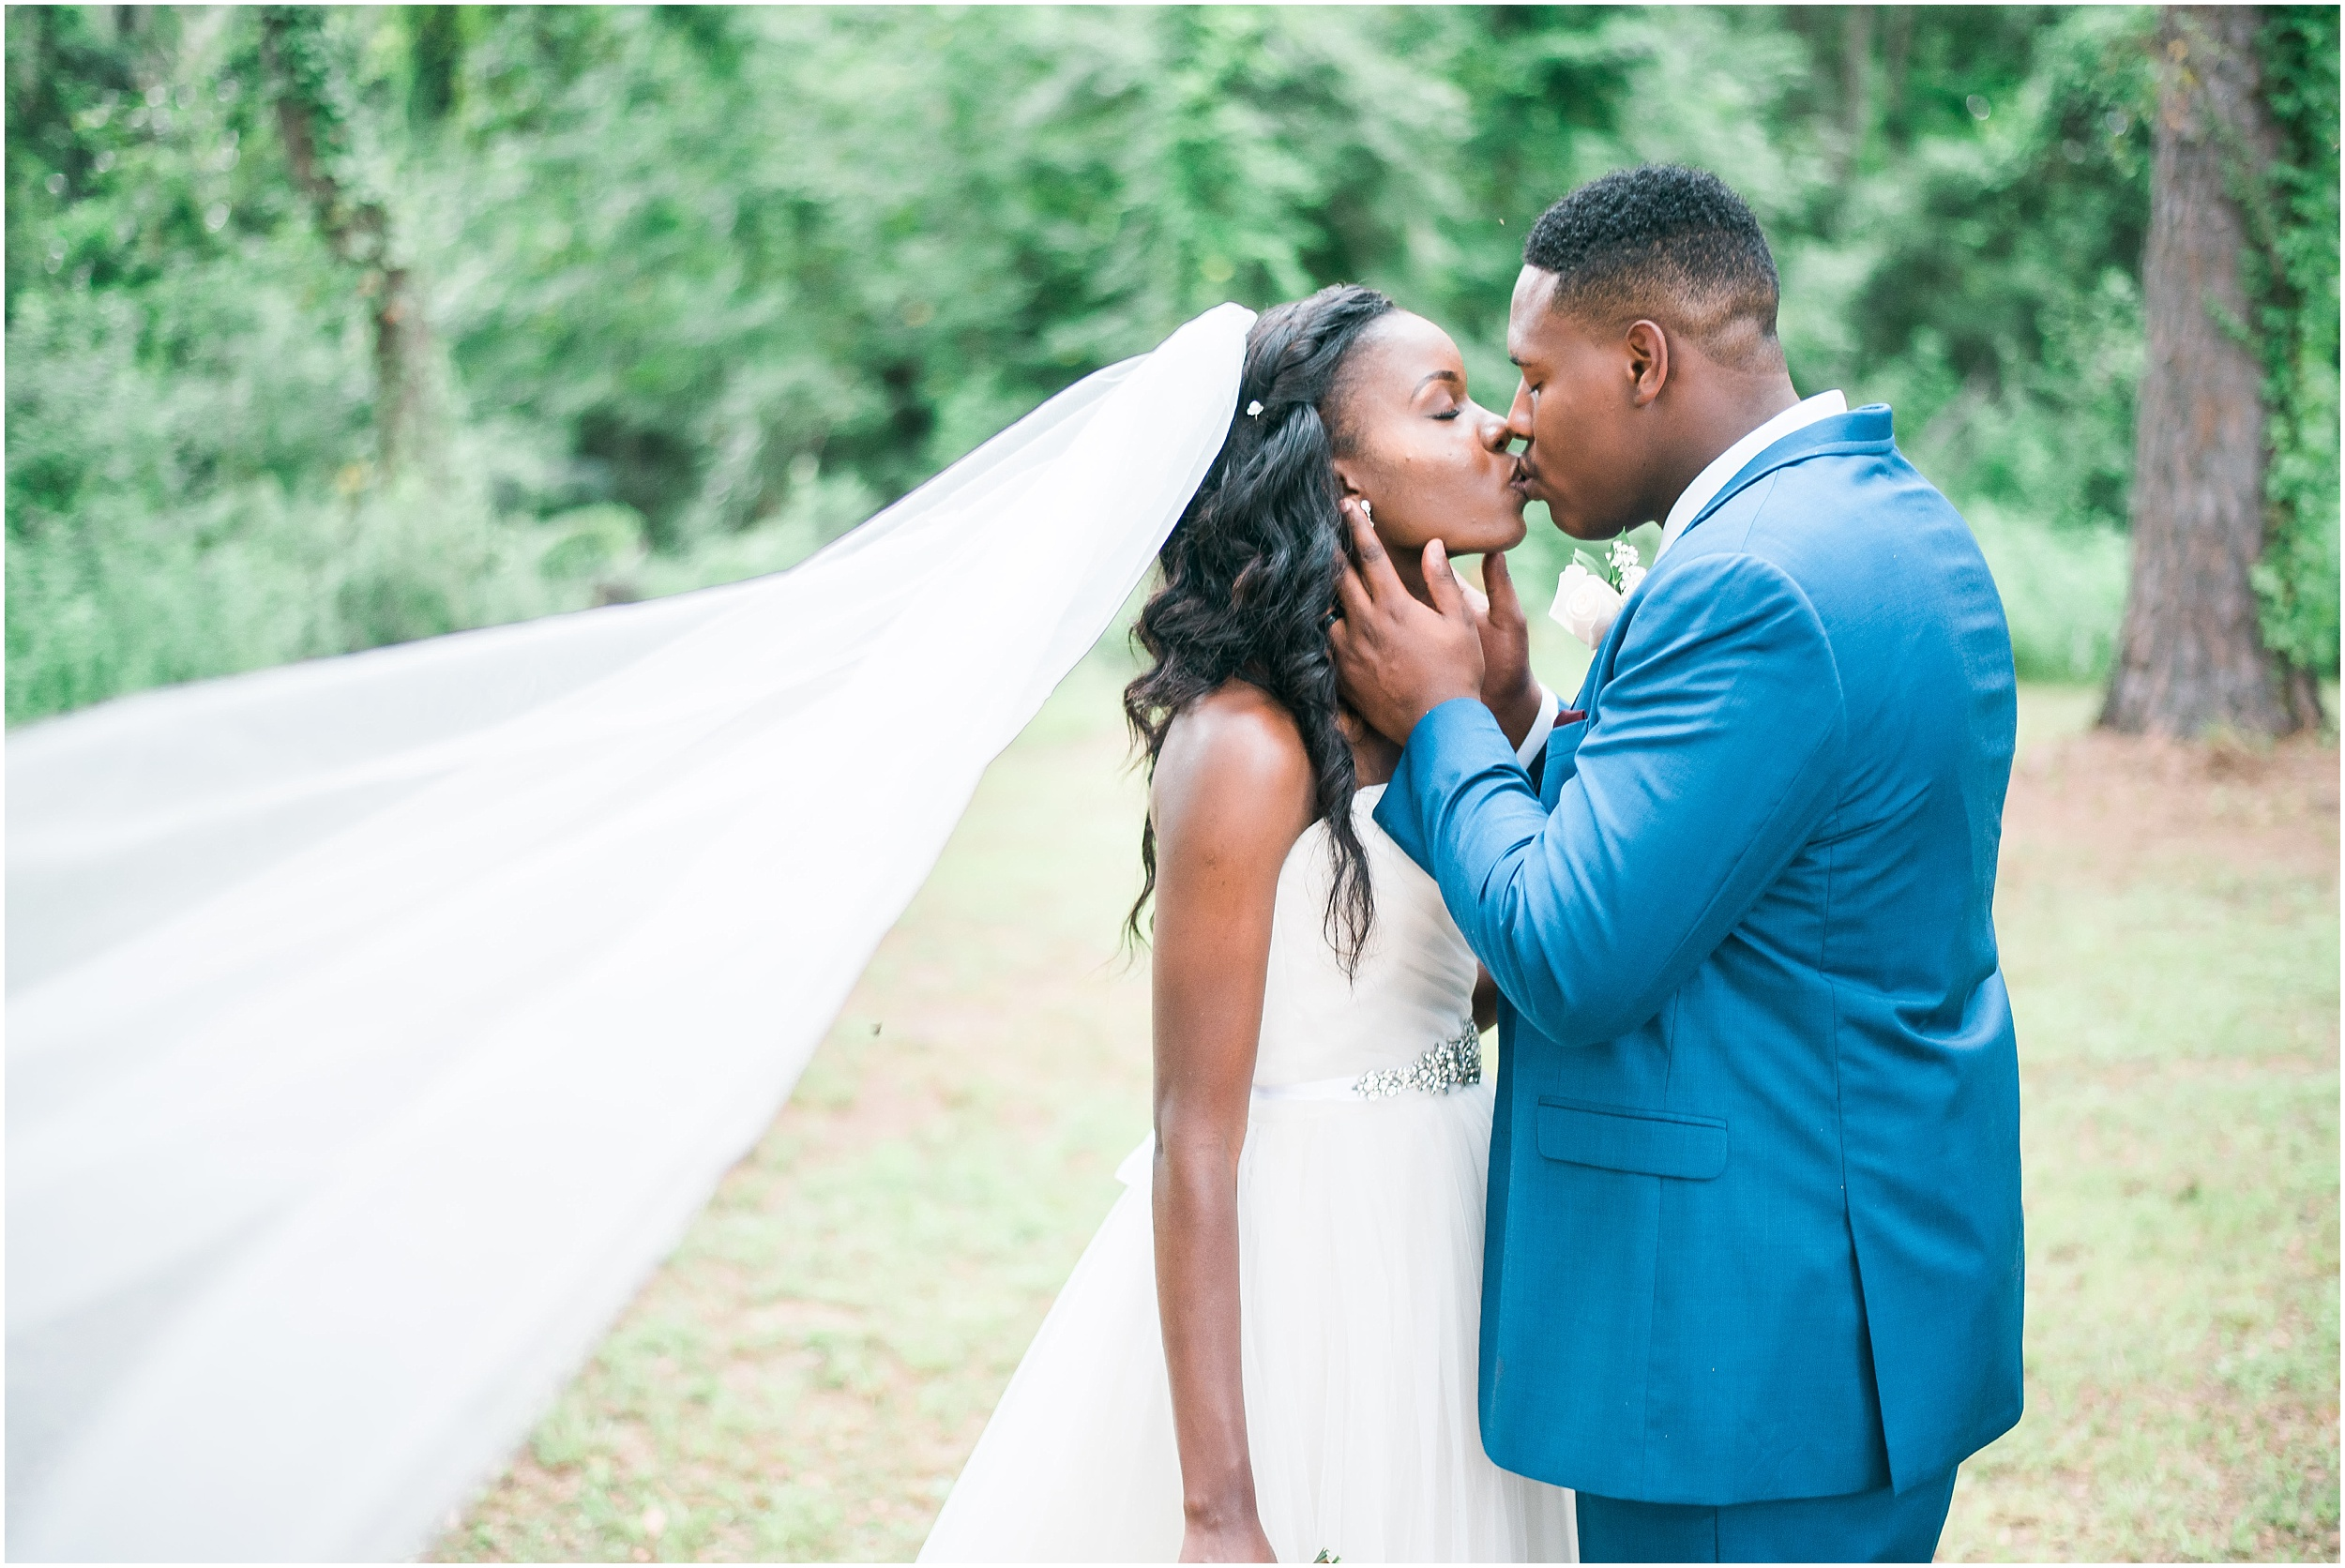 Tallahassee Florida Wedding Photographer, Therline & Jerry Wedding at Restoration Place, Tallahassee Florida_0031.jpg